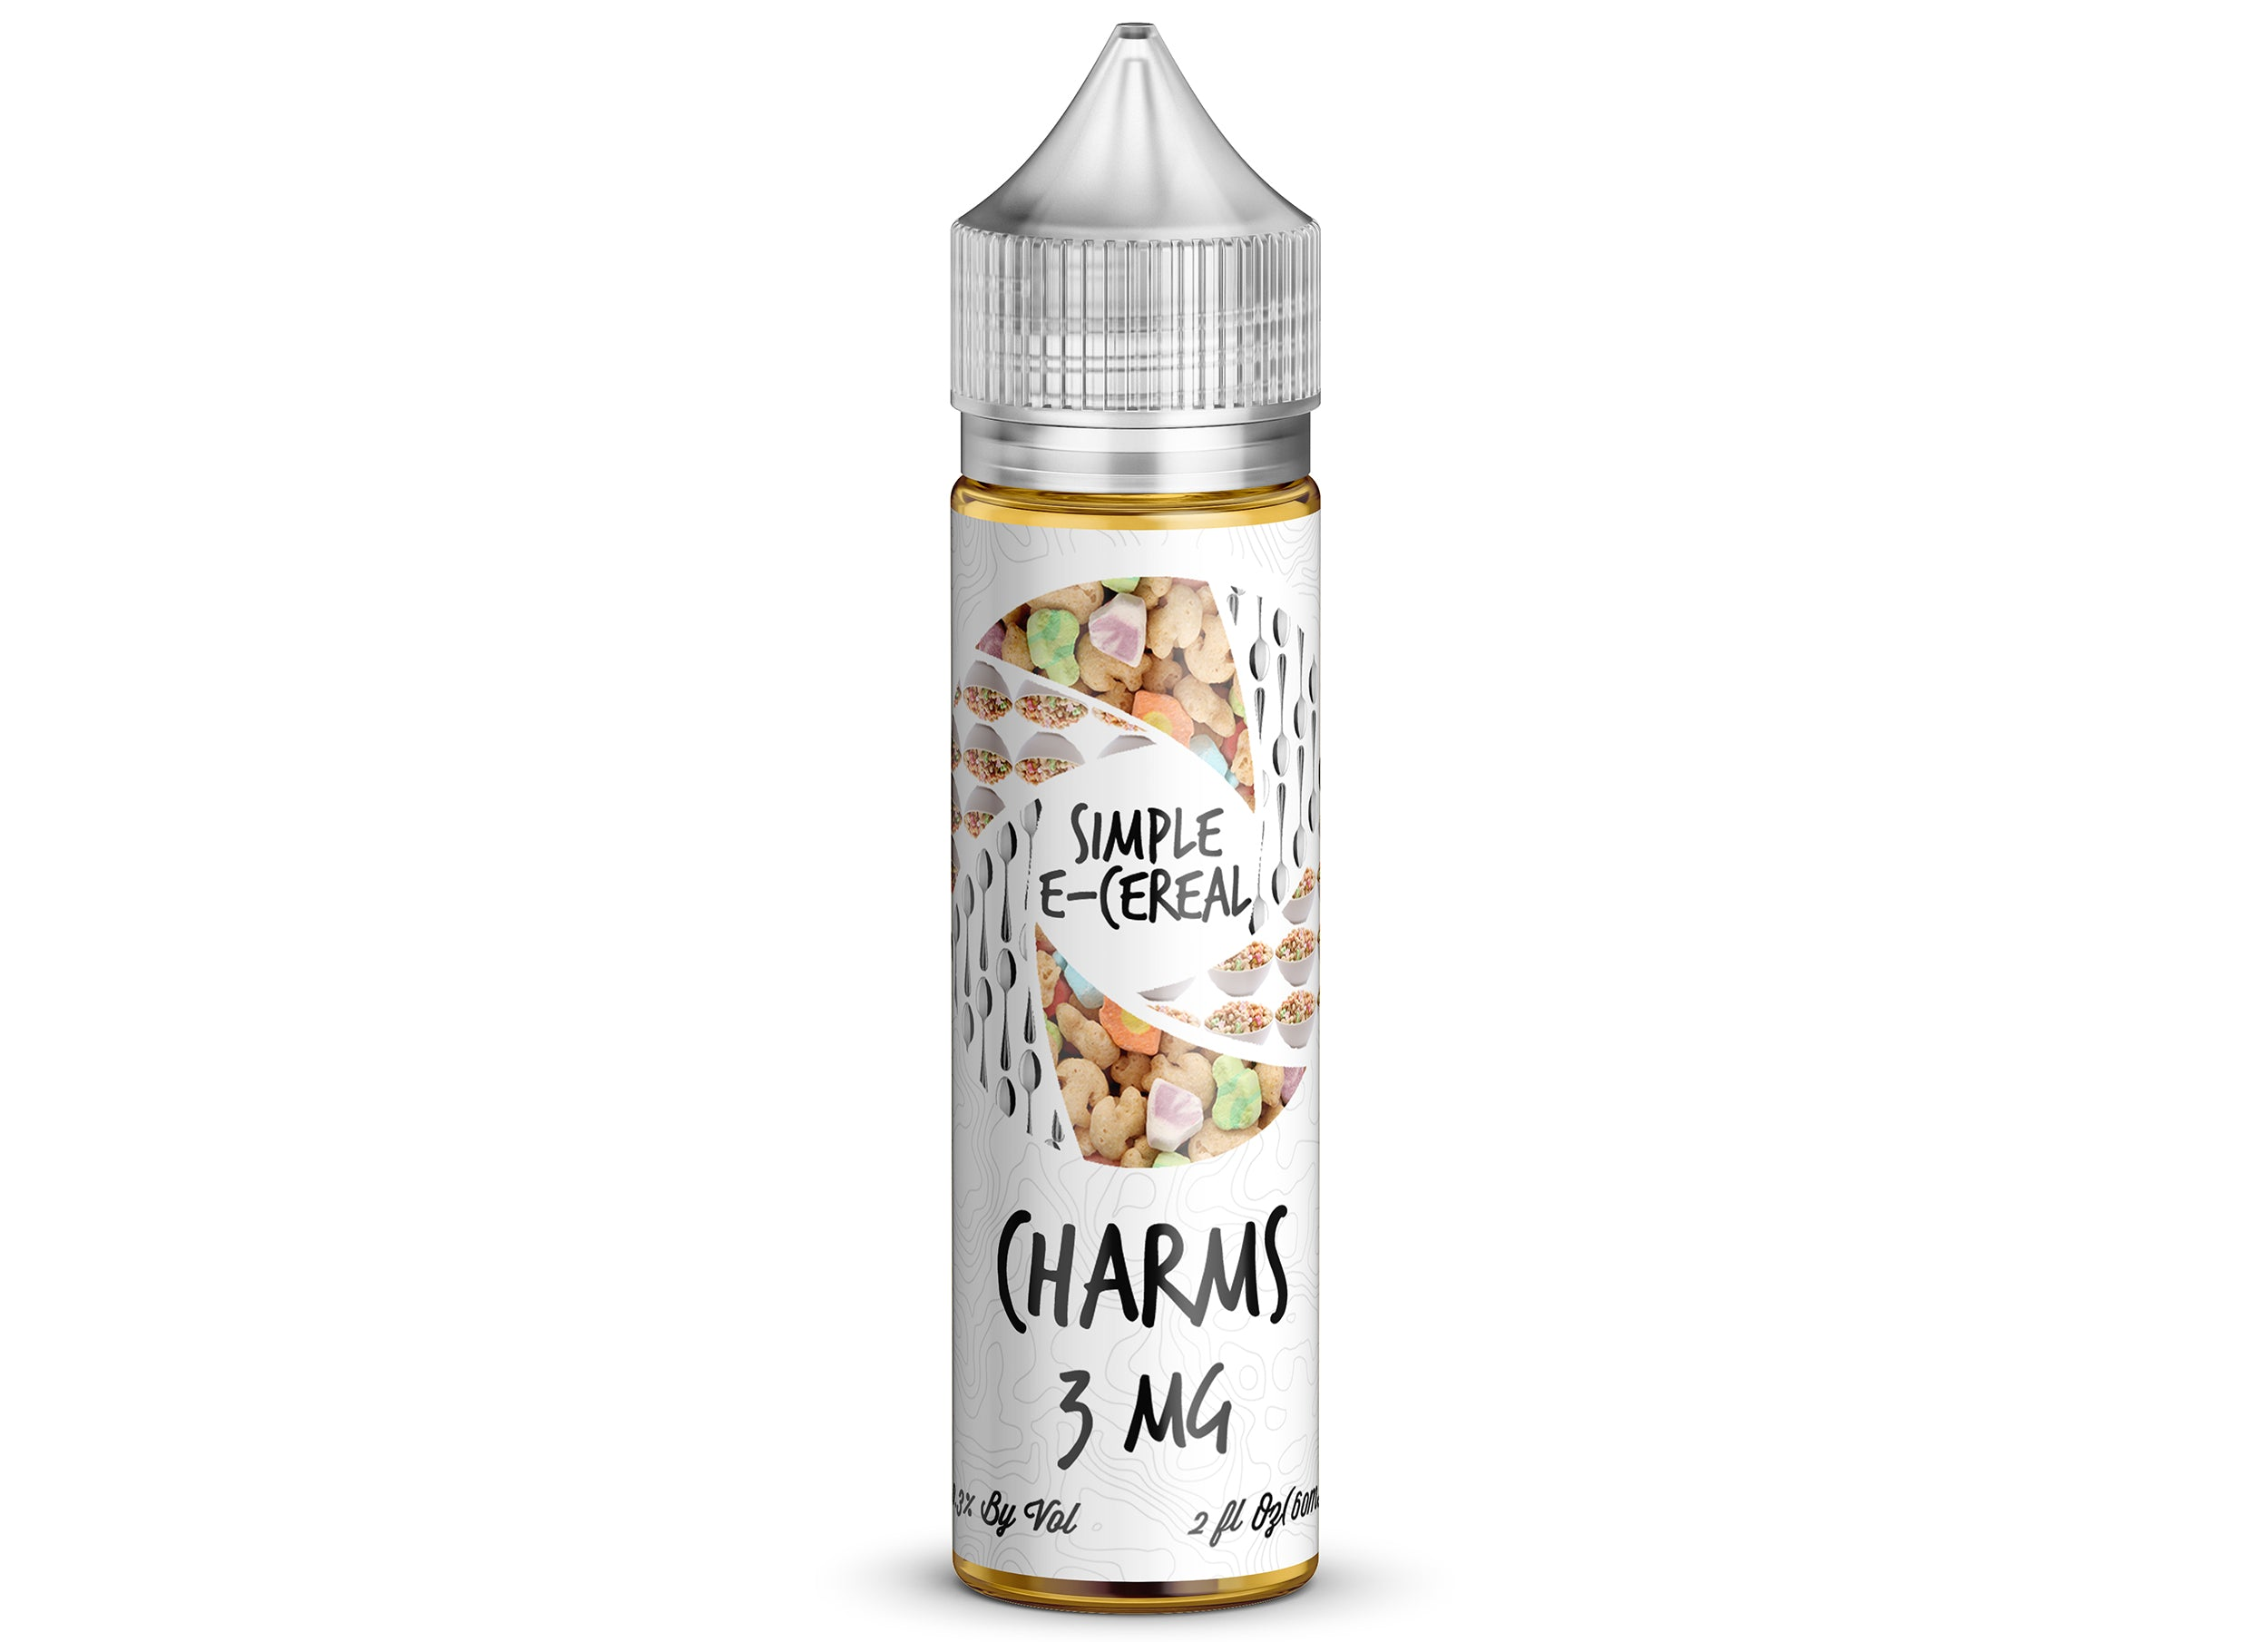 Simple E-Cereal Charms 60ml